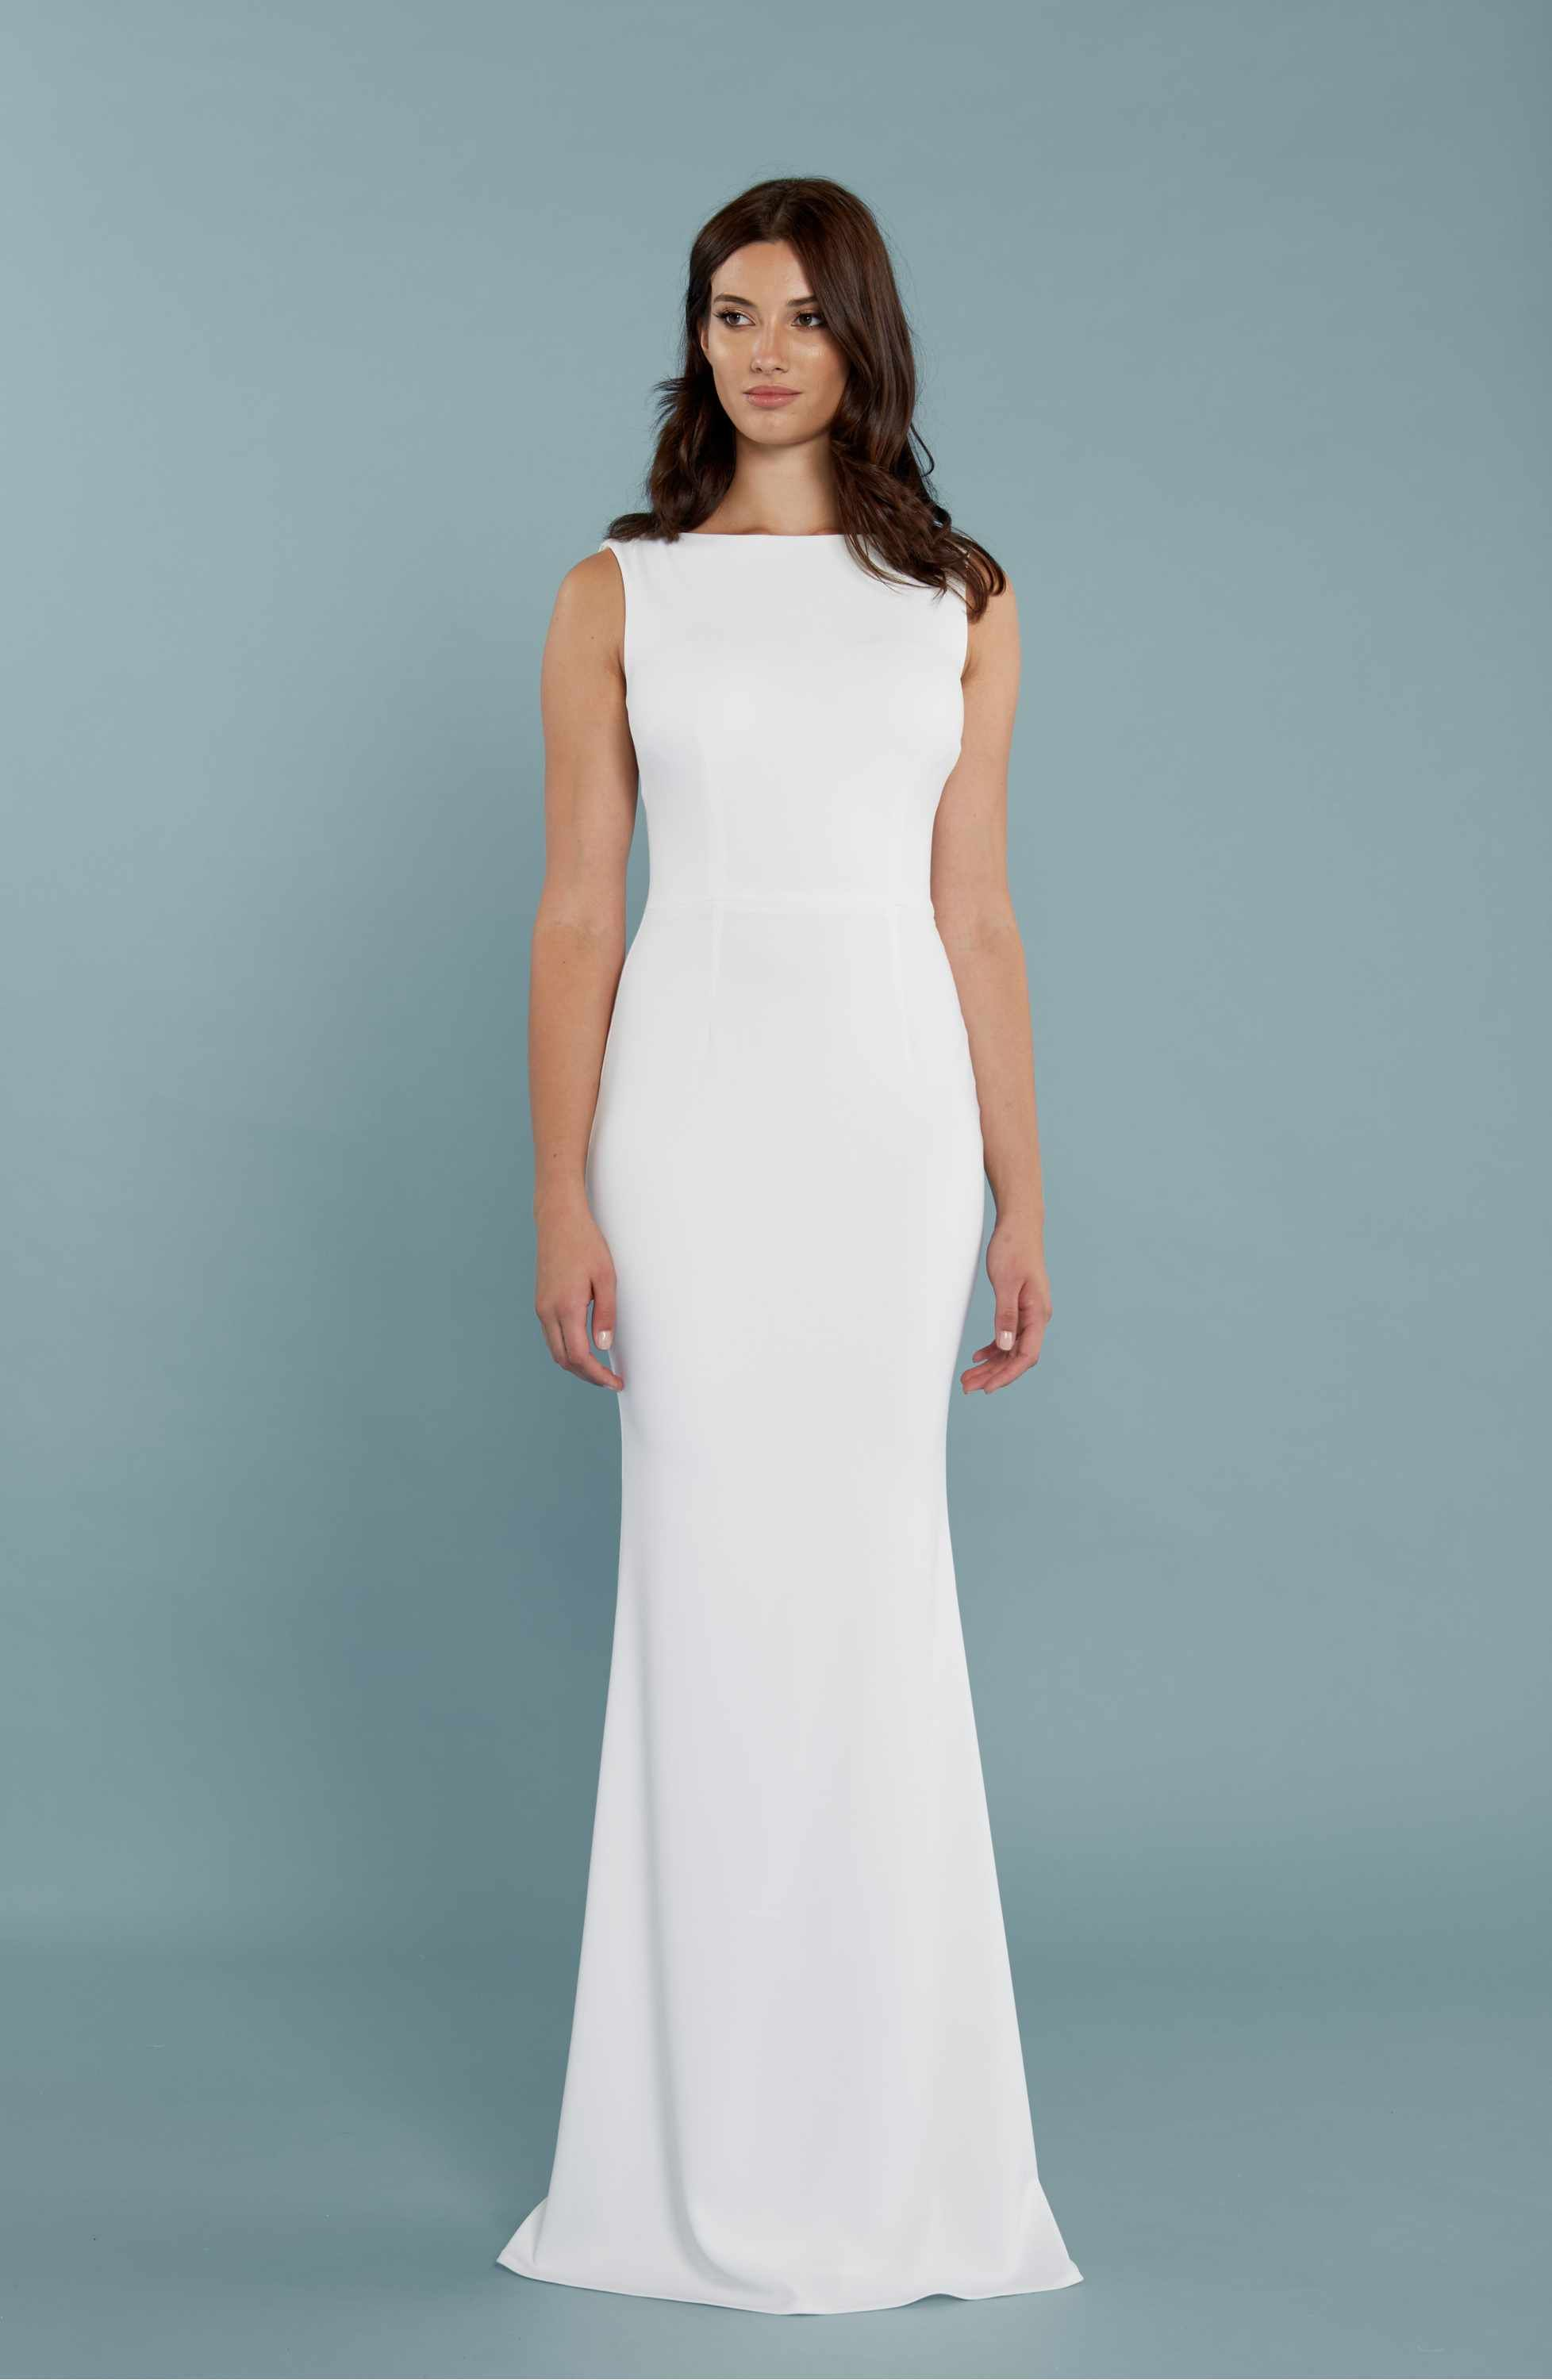 Main Image - Katie May Drape Back Crepe Gown | Dresses | Pinterest ...